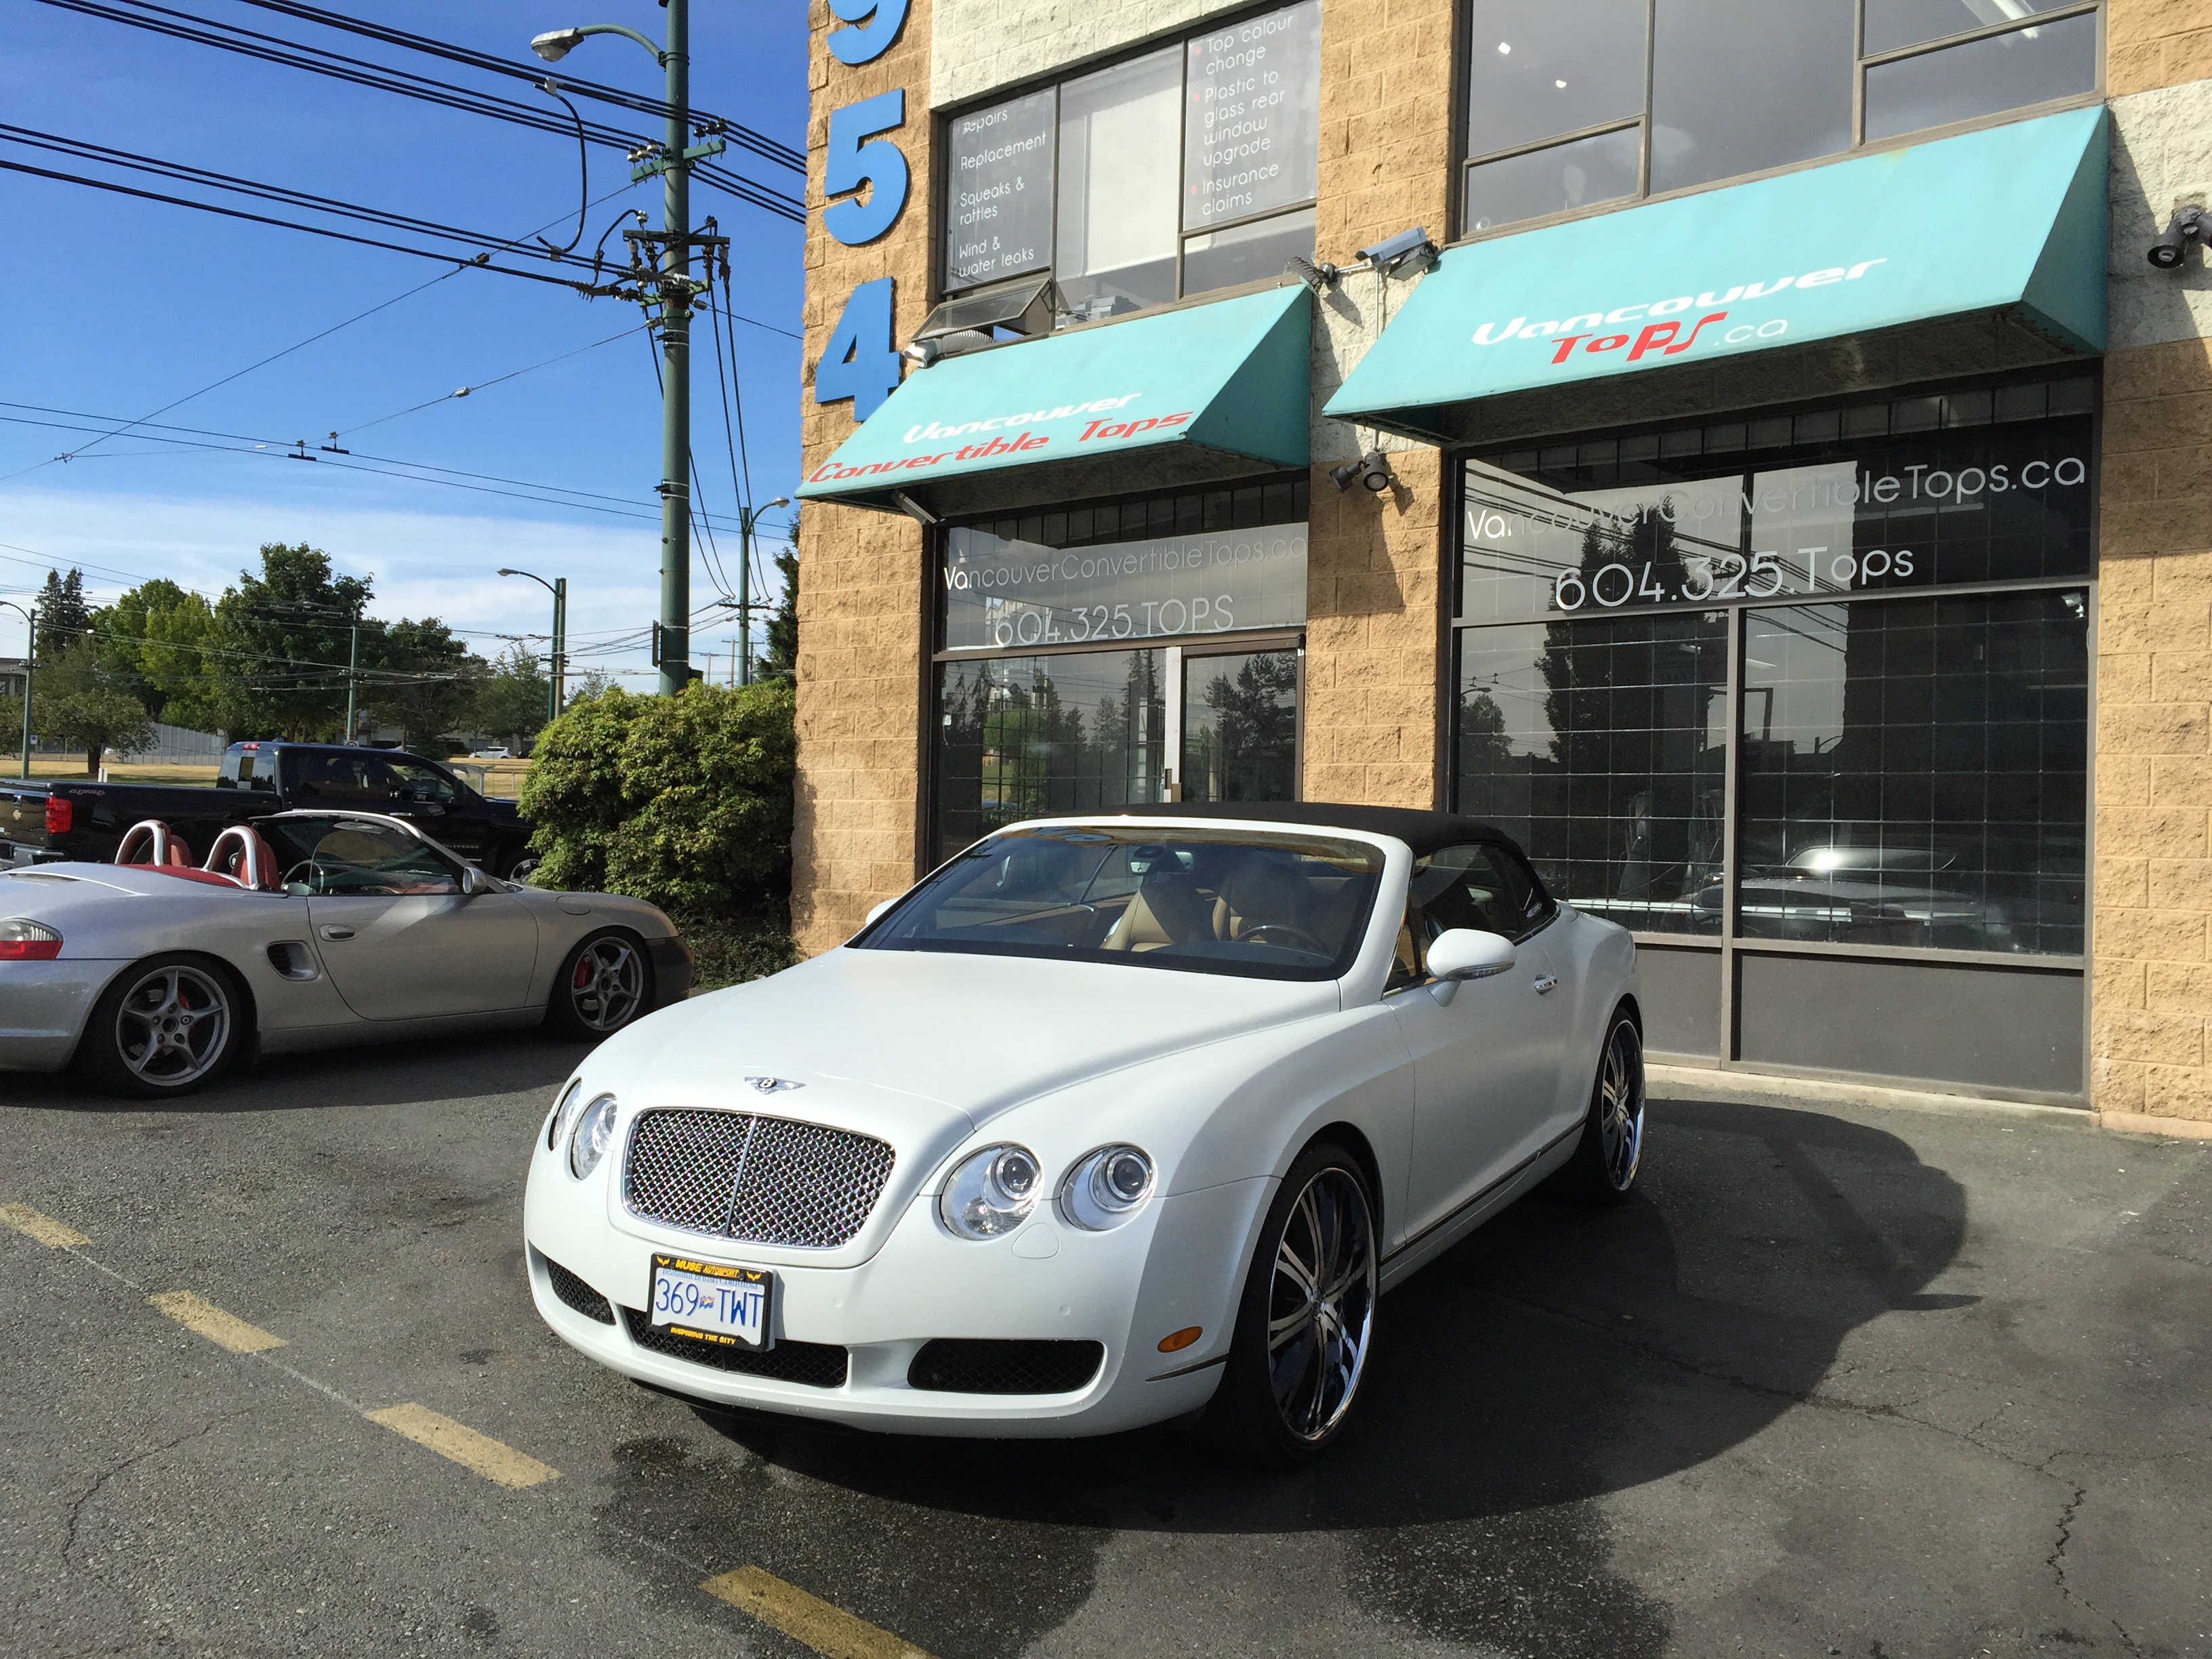 supersports at videos roadshow is the insurance mph gt british video luxury continental bentley supersprots